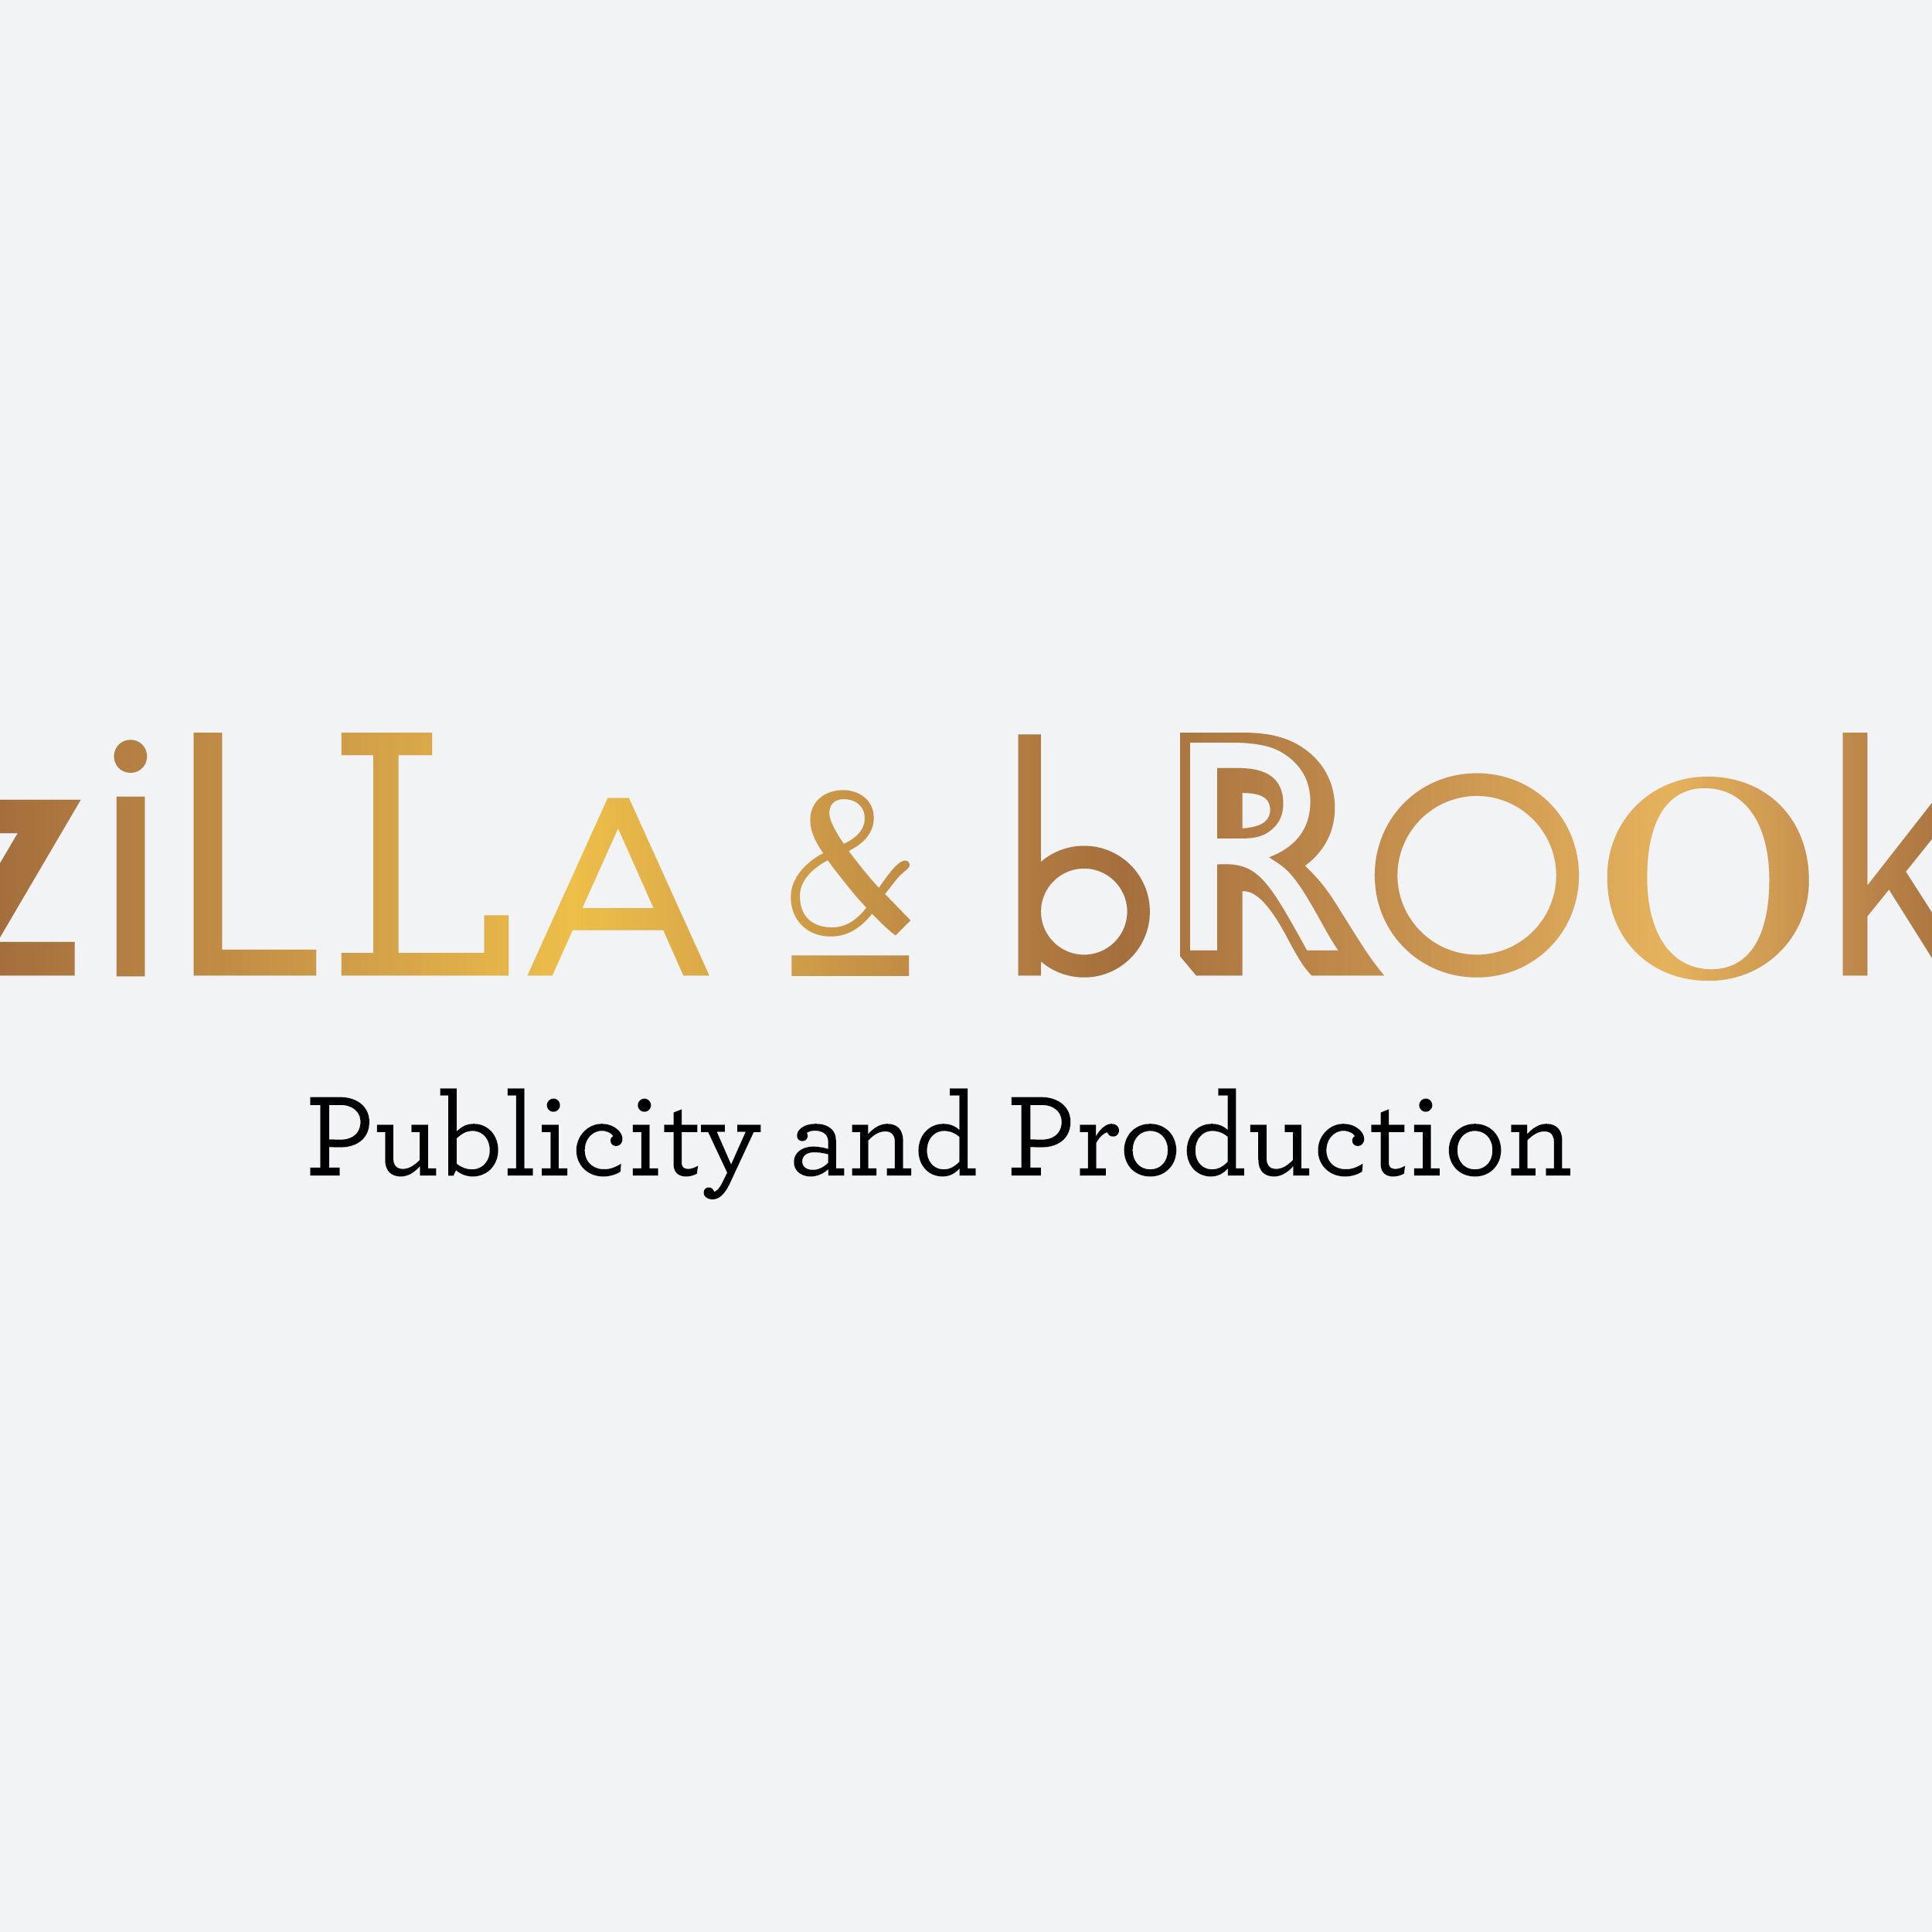 ZILLA & BROOK Promo image for web